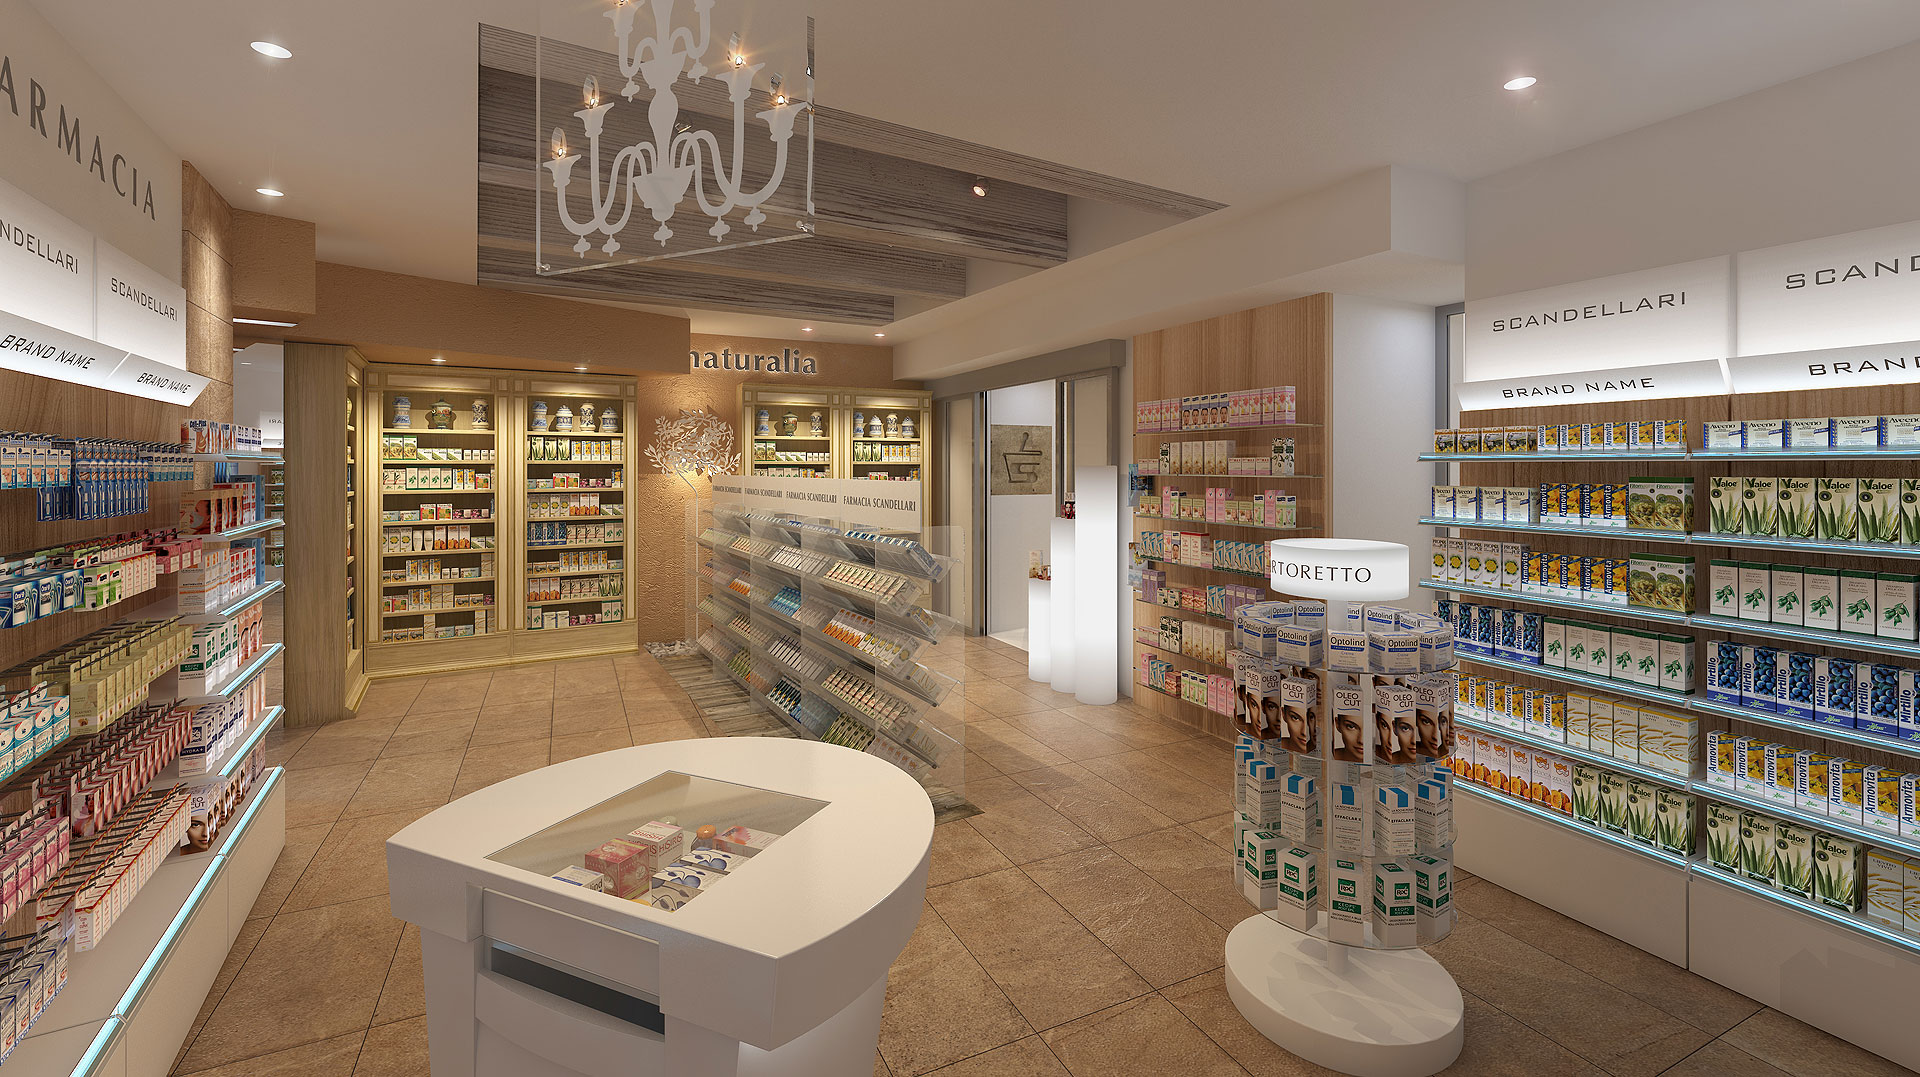 ITALY'S No.1 PHARMACY DESIGN